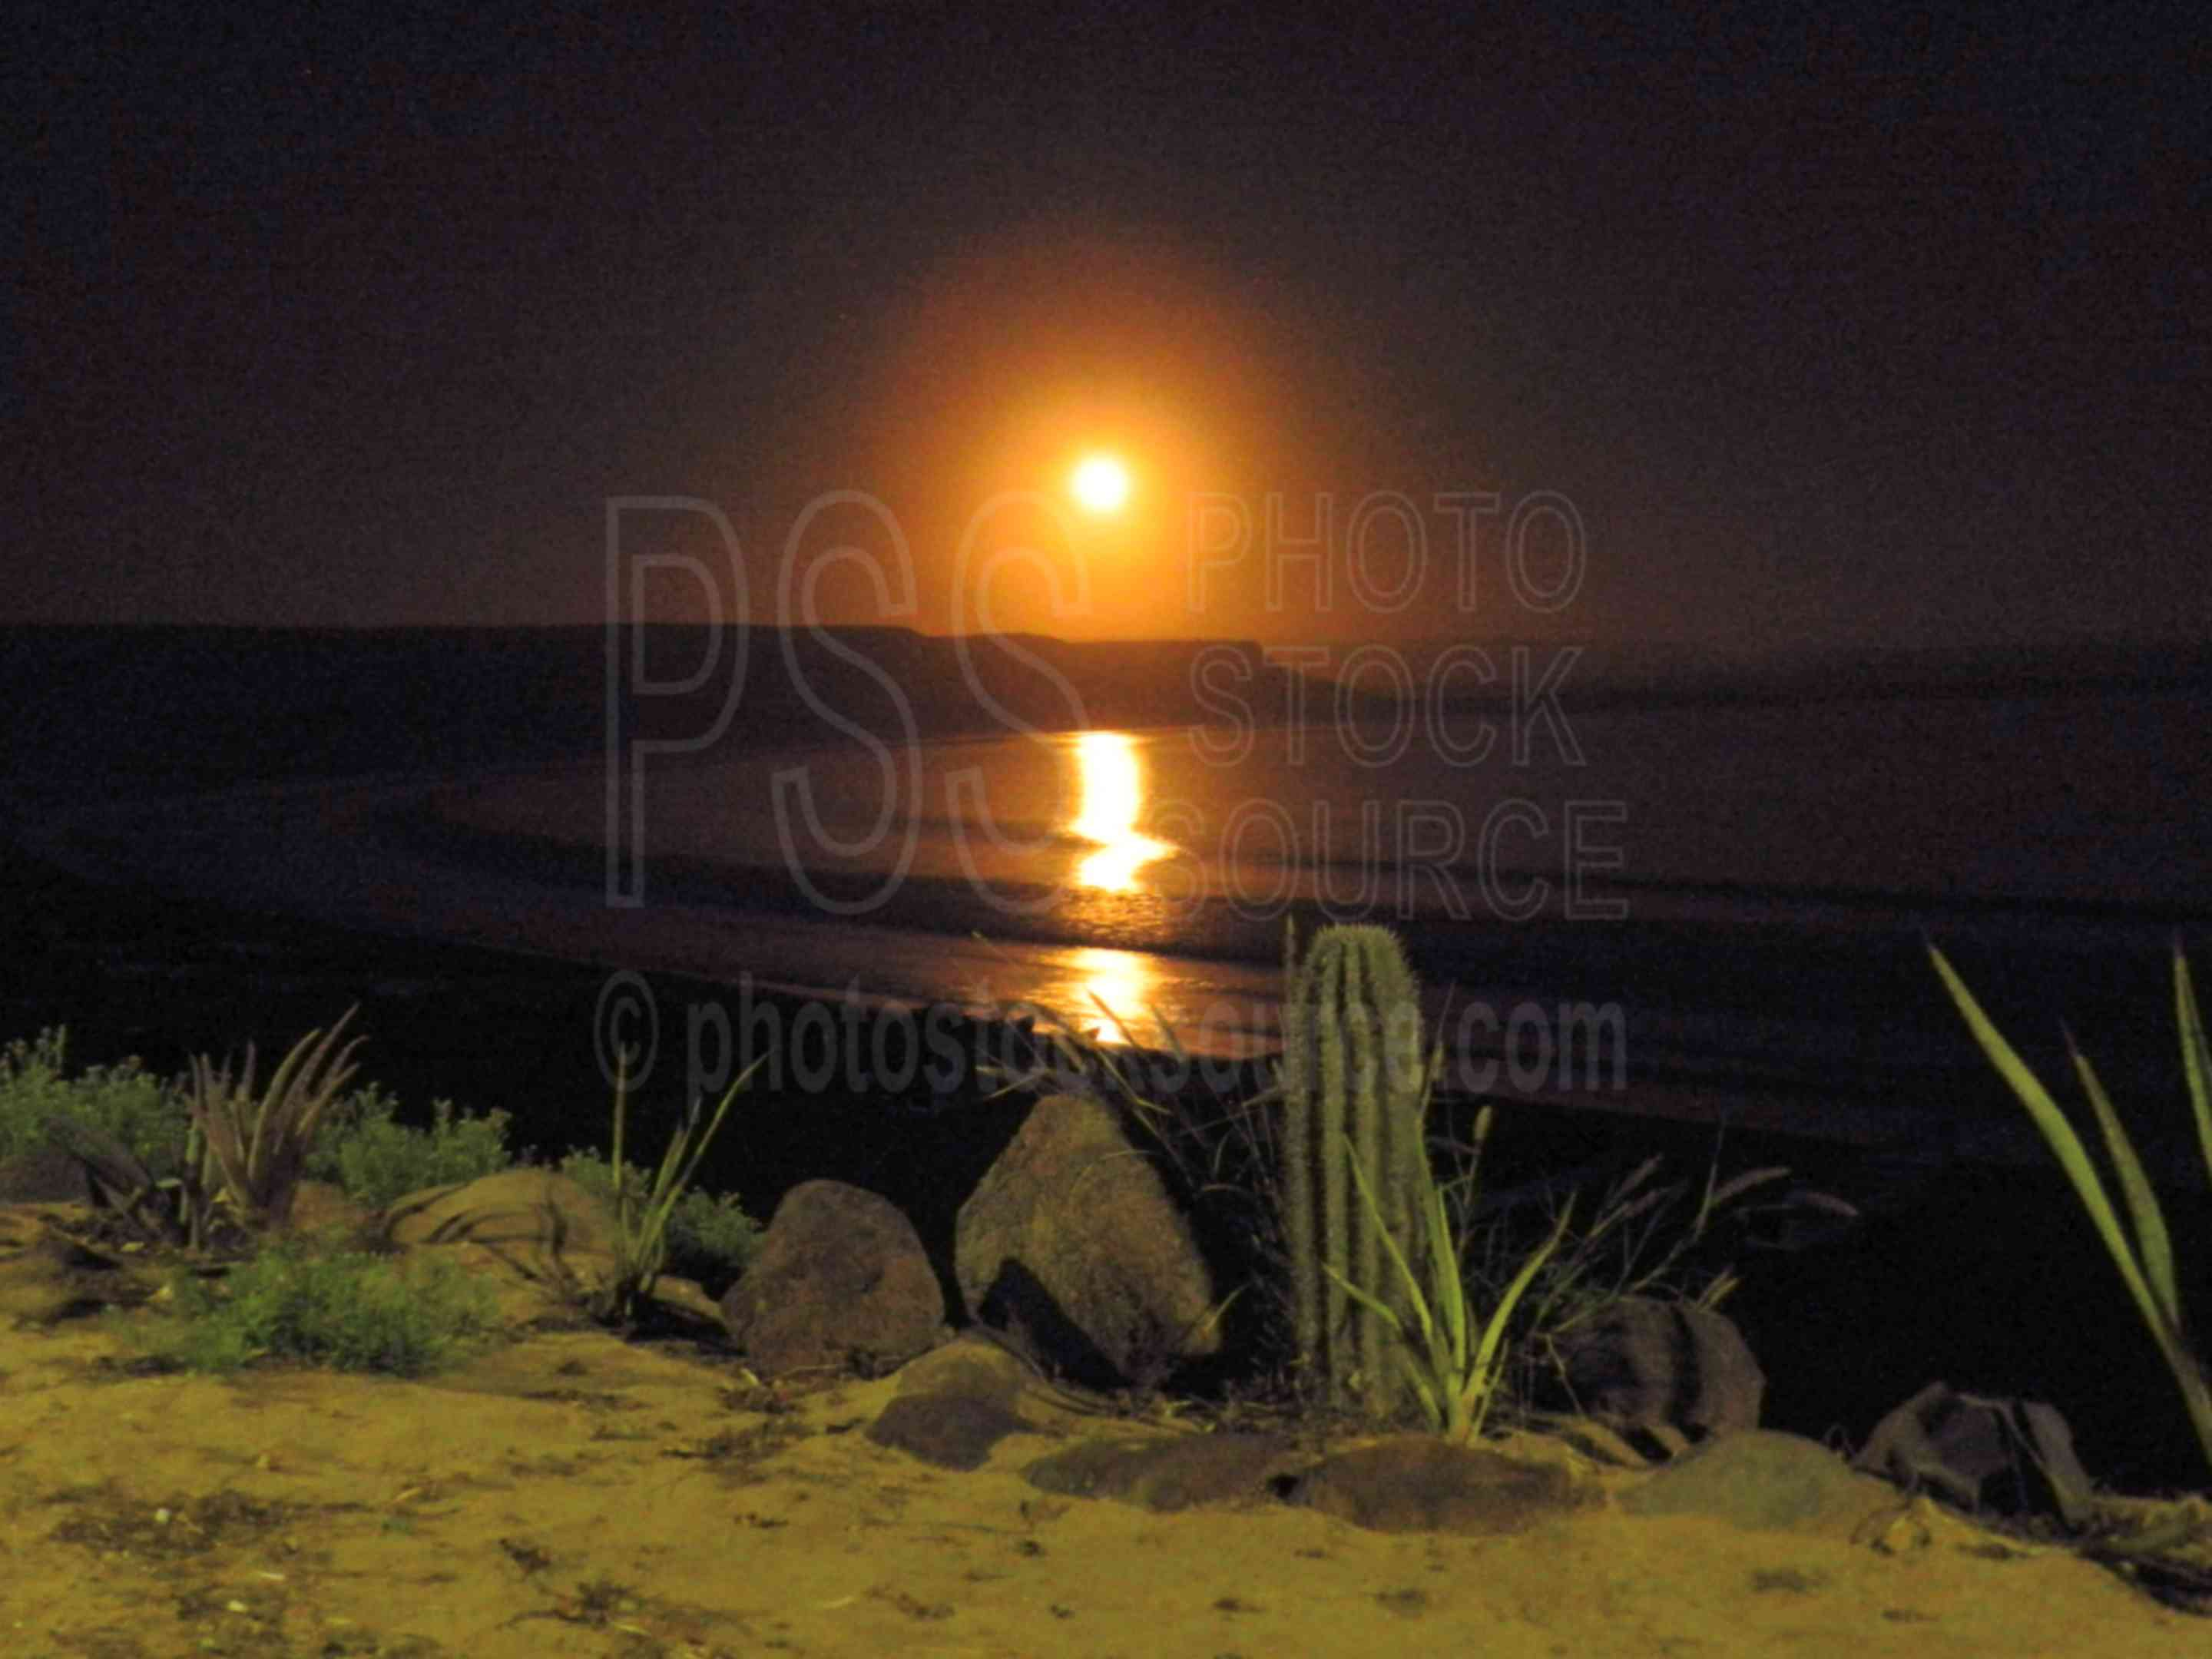 Scorpion Bay Moonrise,moon,moonrise,cactus,ocean,coast,bay,surfers,surfing,waves,sport,rocks